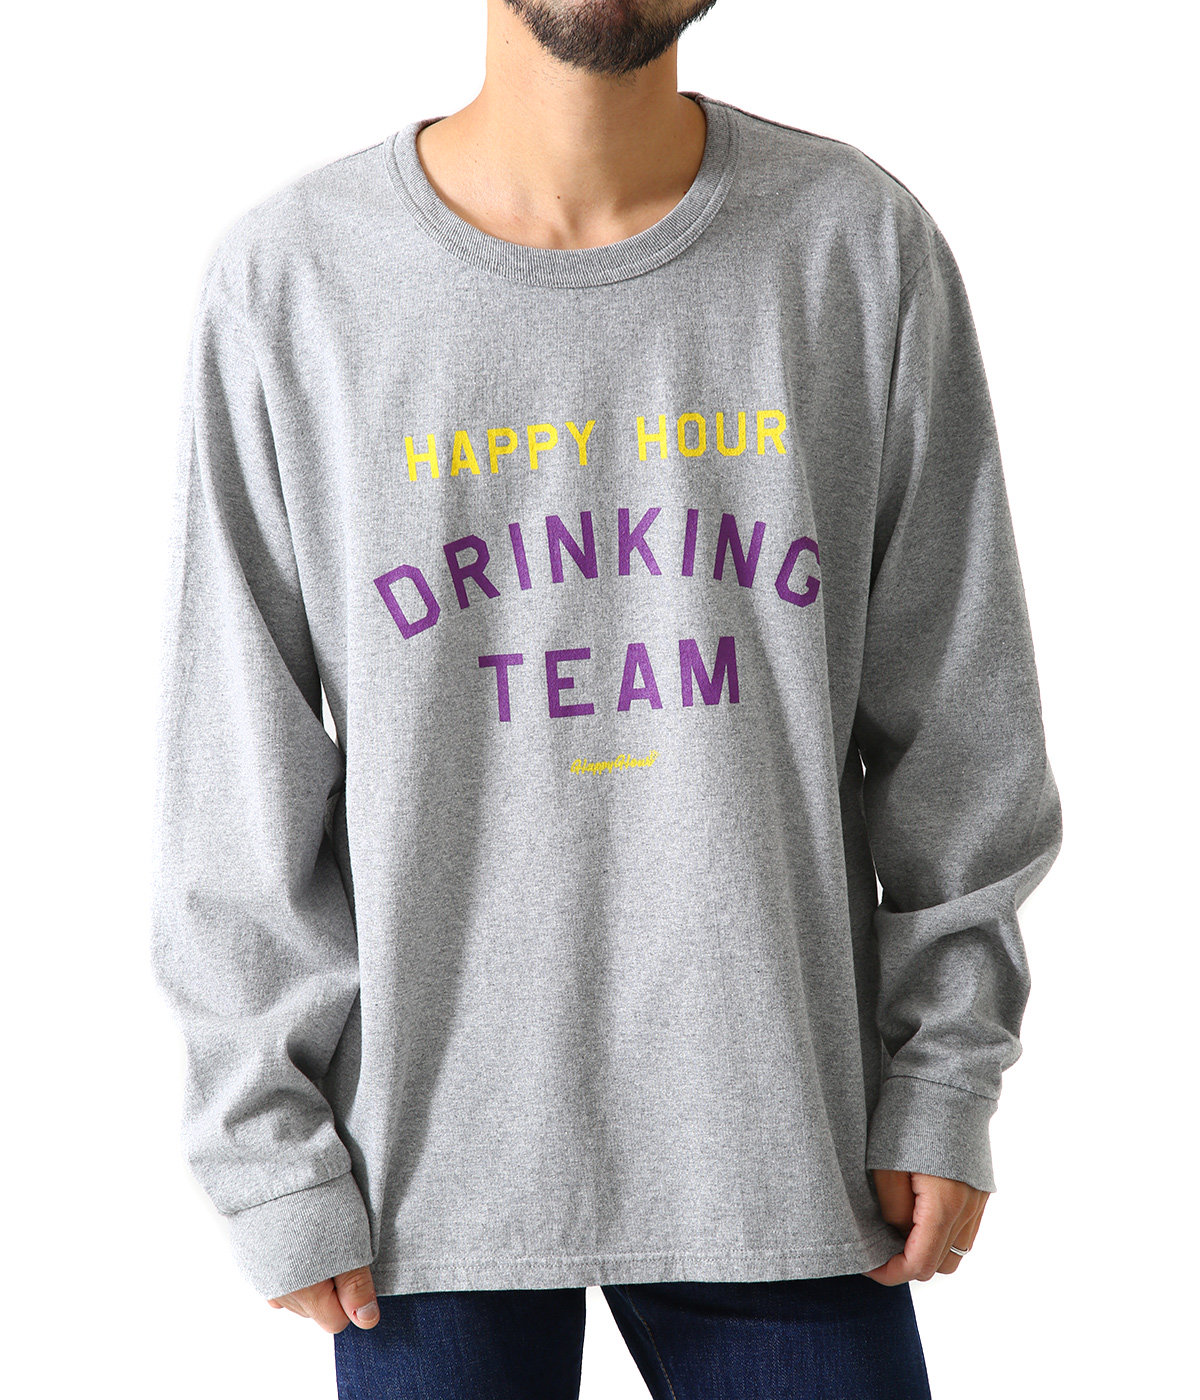 HAPPY HOUR DRINKING TEAM shirt